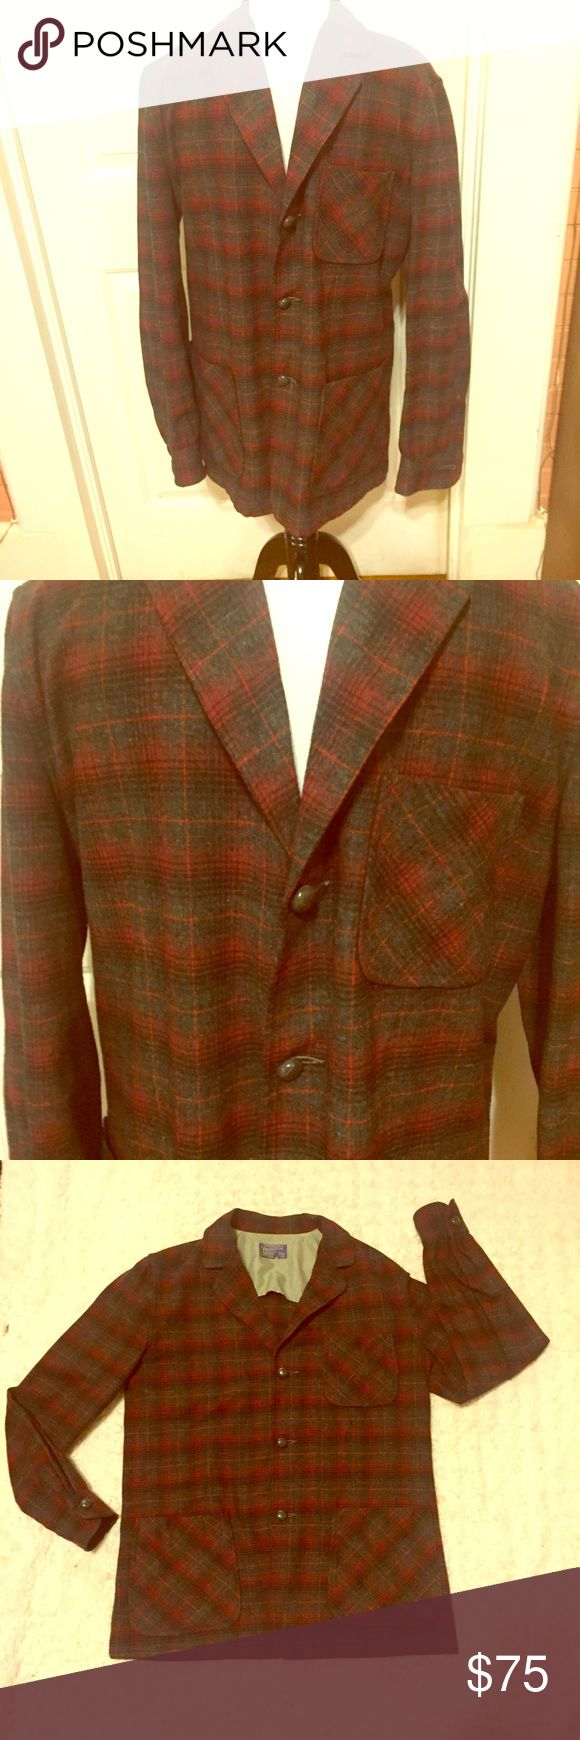 Men's Unique Vintage Pendleton Plaid Wool Coat Men's Unique Vintage Pendleton Plaid Wool Coat. Tag says Medium, looks more like a L/XL to me so go by measurements. Will add soon. In amazing vintage condition. No flaws found. Has one breast pocket and two additional pockets on each side. These will never go out of style! Scoop this up quick! Bundle and Save $ Pendleton Jackets & Coats